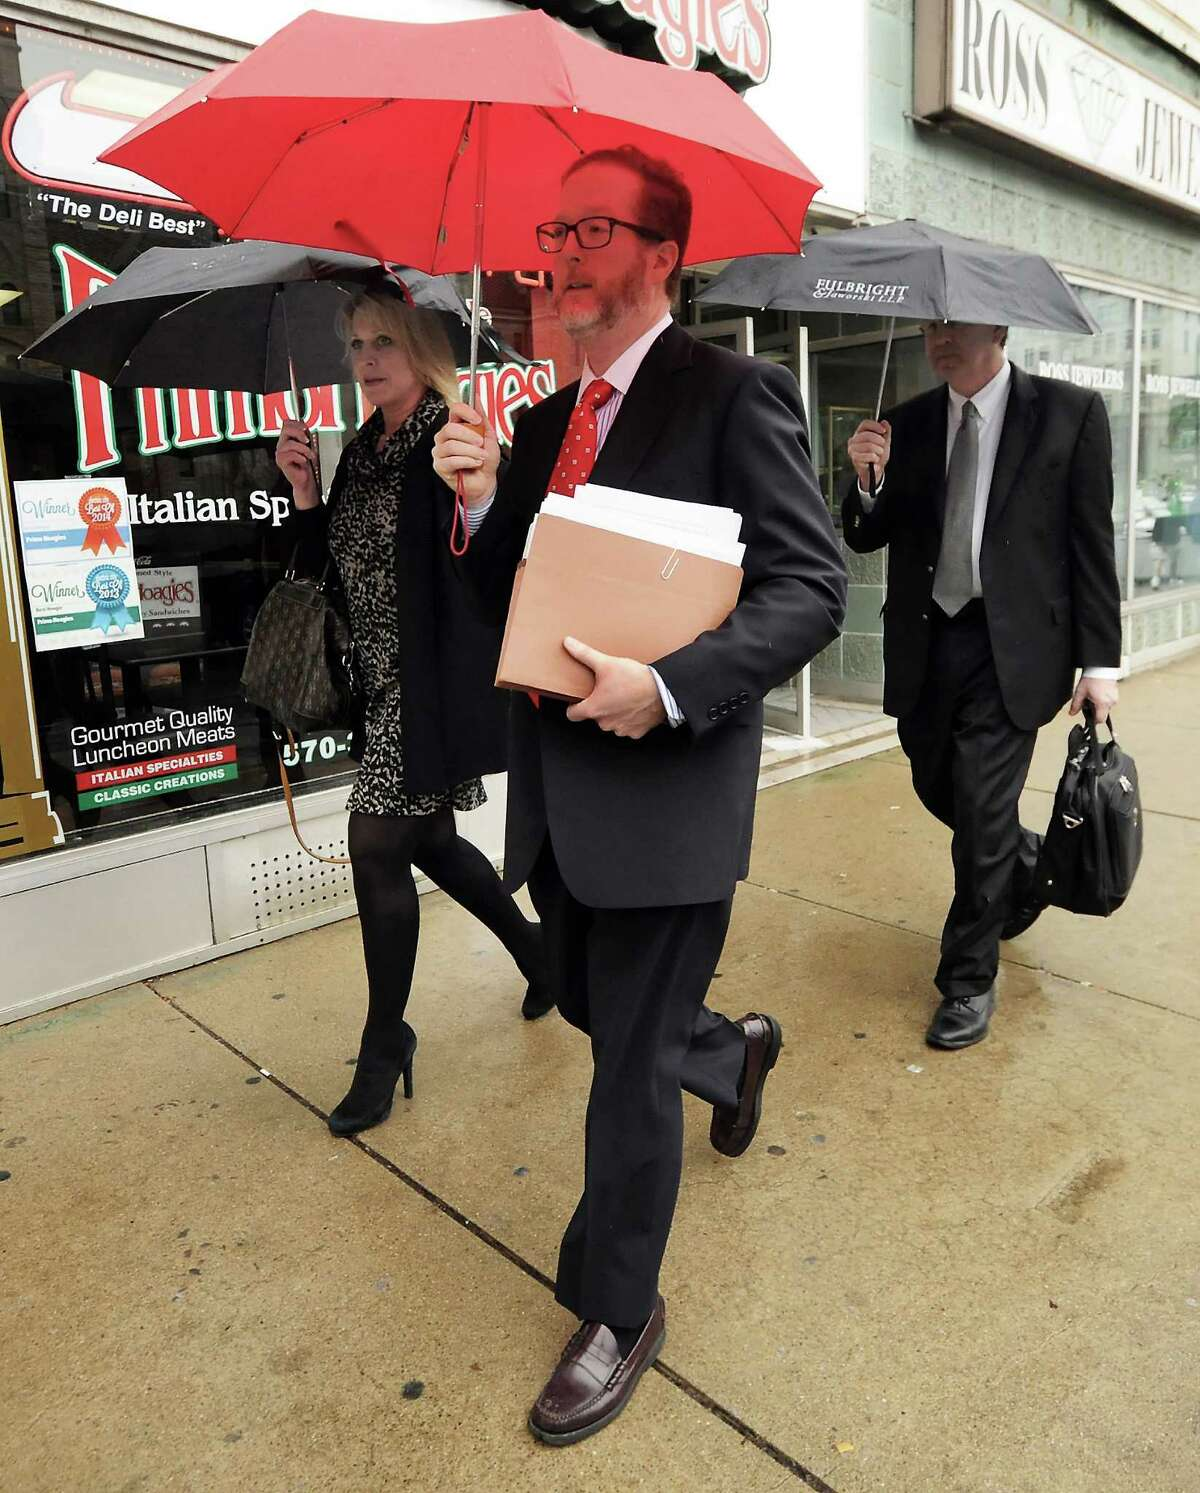 Lawyers for Cabot Oil & Gas based in Houston, Texas, leave the William J. Nealon Federal Building and U.S. Courhouse in downtown Scranton, Pa., on Thursday, March 10, 2016, after Cabot lost its case against two Dimock Township families. The Ely family were awarded $ 2.75 million dollars and the Hubert family were awarded $ 1.49 million dollars by a grand jury. Cabot was ruled responsible for contaminating the familes well water with high levels of methane. Both families have been pursuing the case for 6 years after rejecting a settlement offer in 2012. ( Butch Comegys / The Times & Tribune via AP) MANDATORY CREDIT ORG XMIT: PASCR105